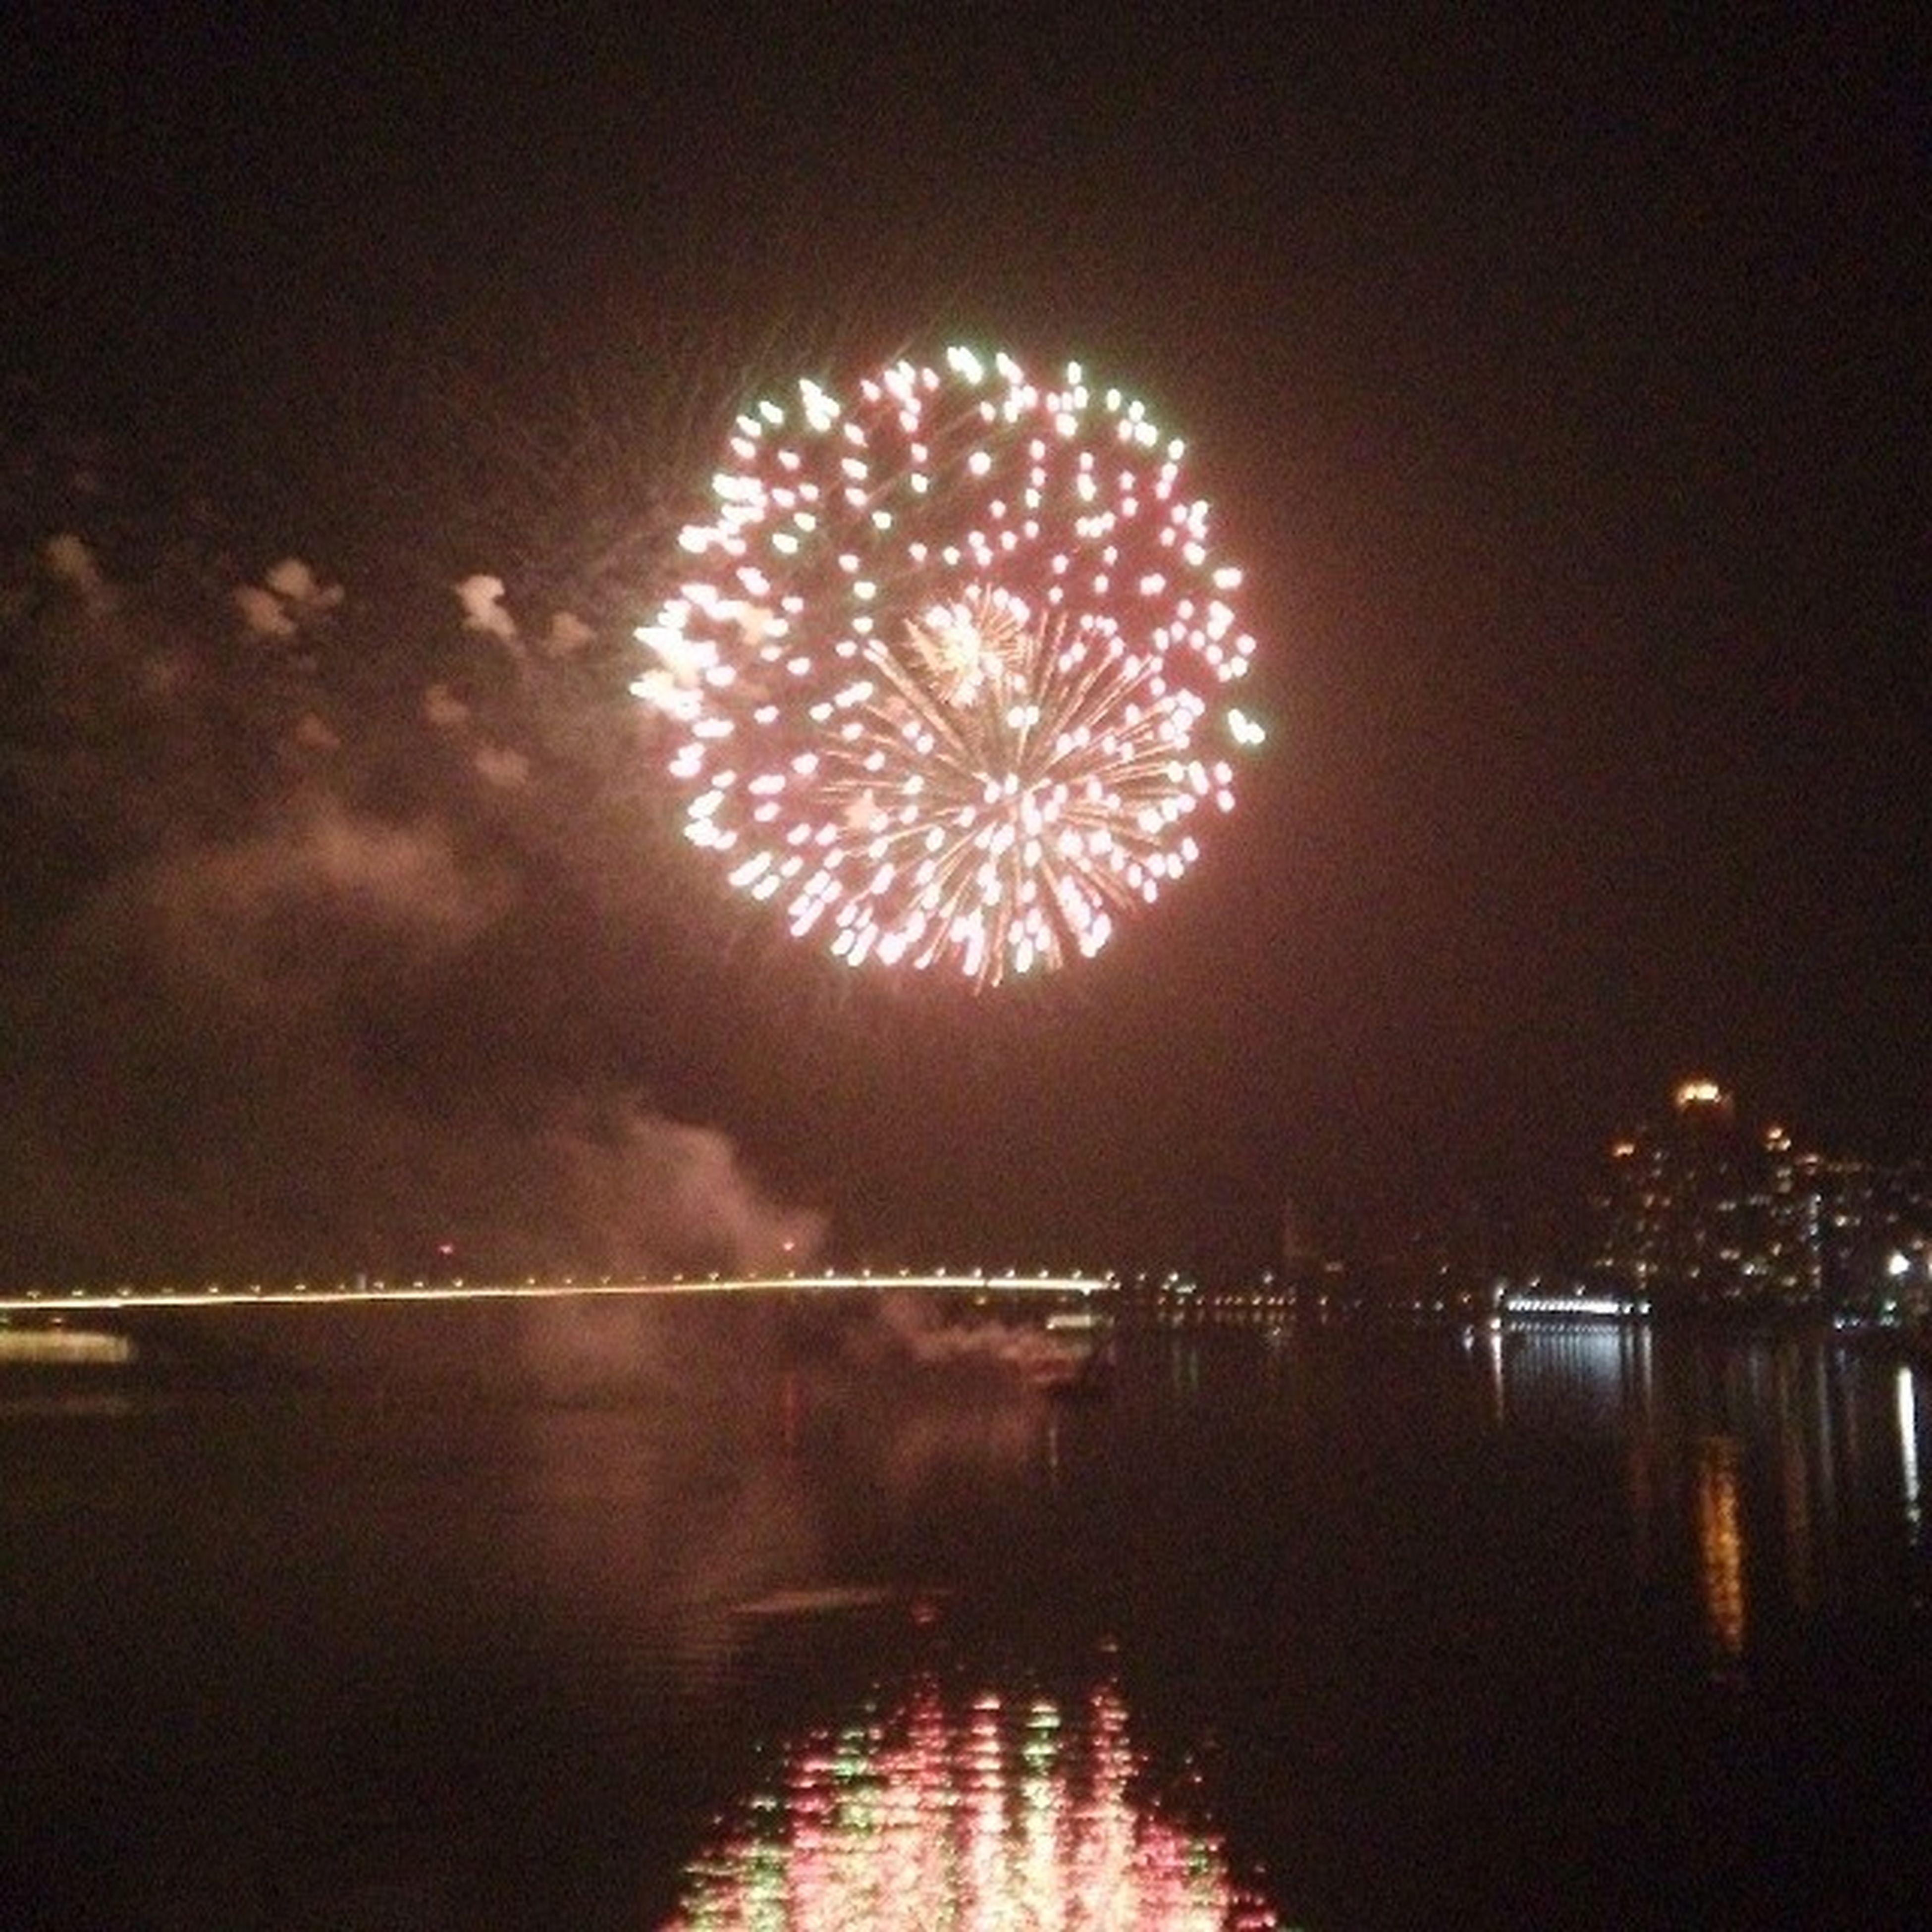 illuminated, night, water, reflection, waterfront, sky, glowing, long exposure, river, firework display, built structure, exploding, architecture, building exterior, outdoors, light, celebration, lake, arts culture and entertainment, lighting equipment